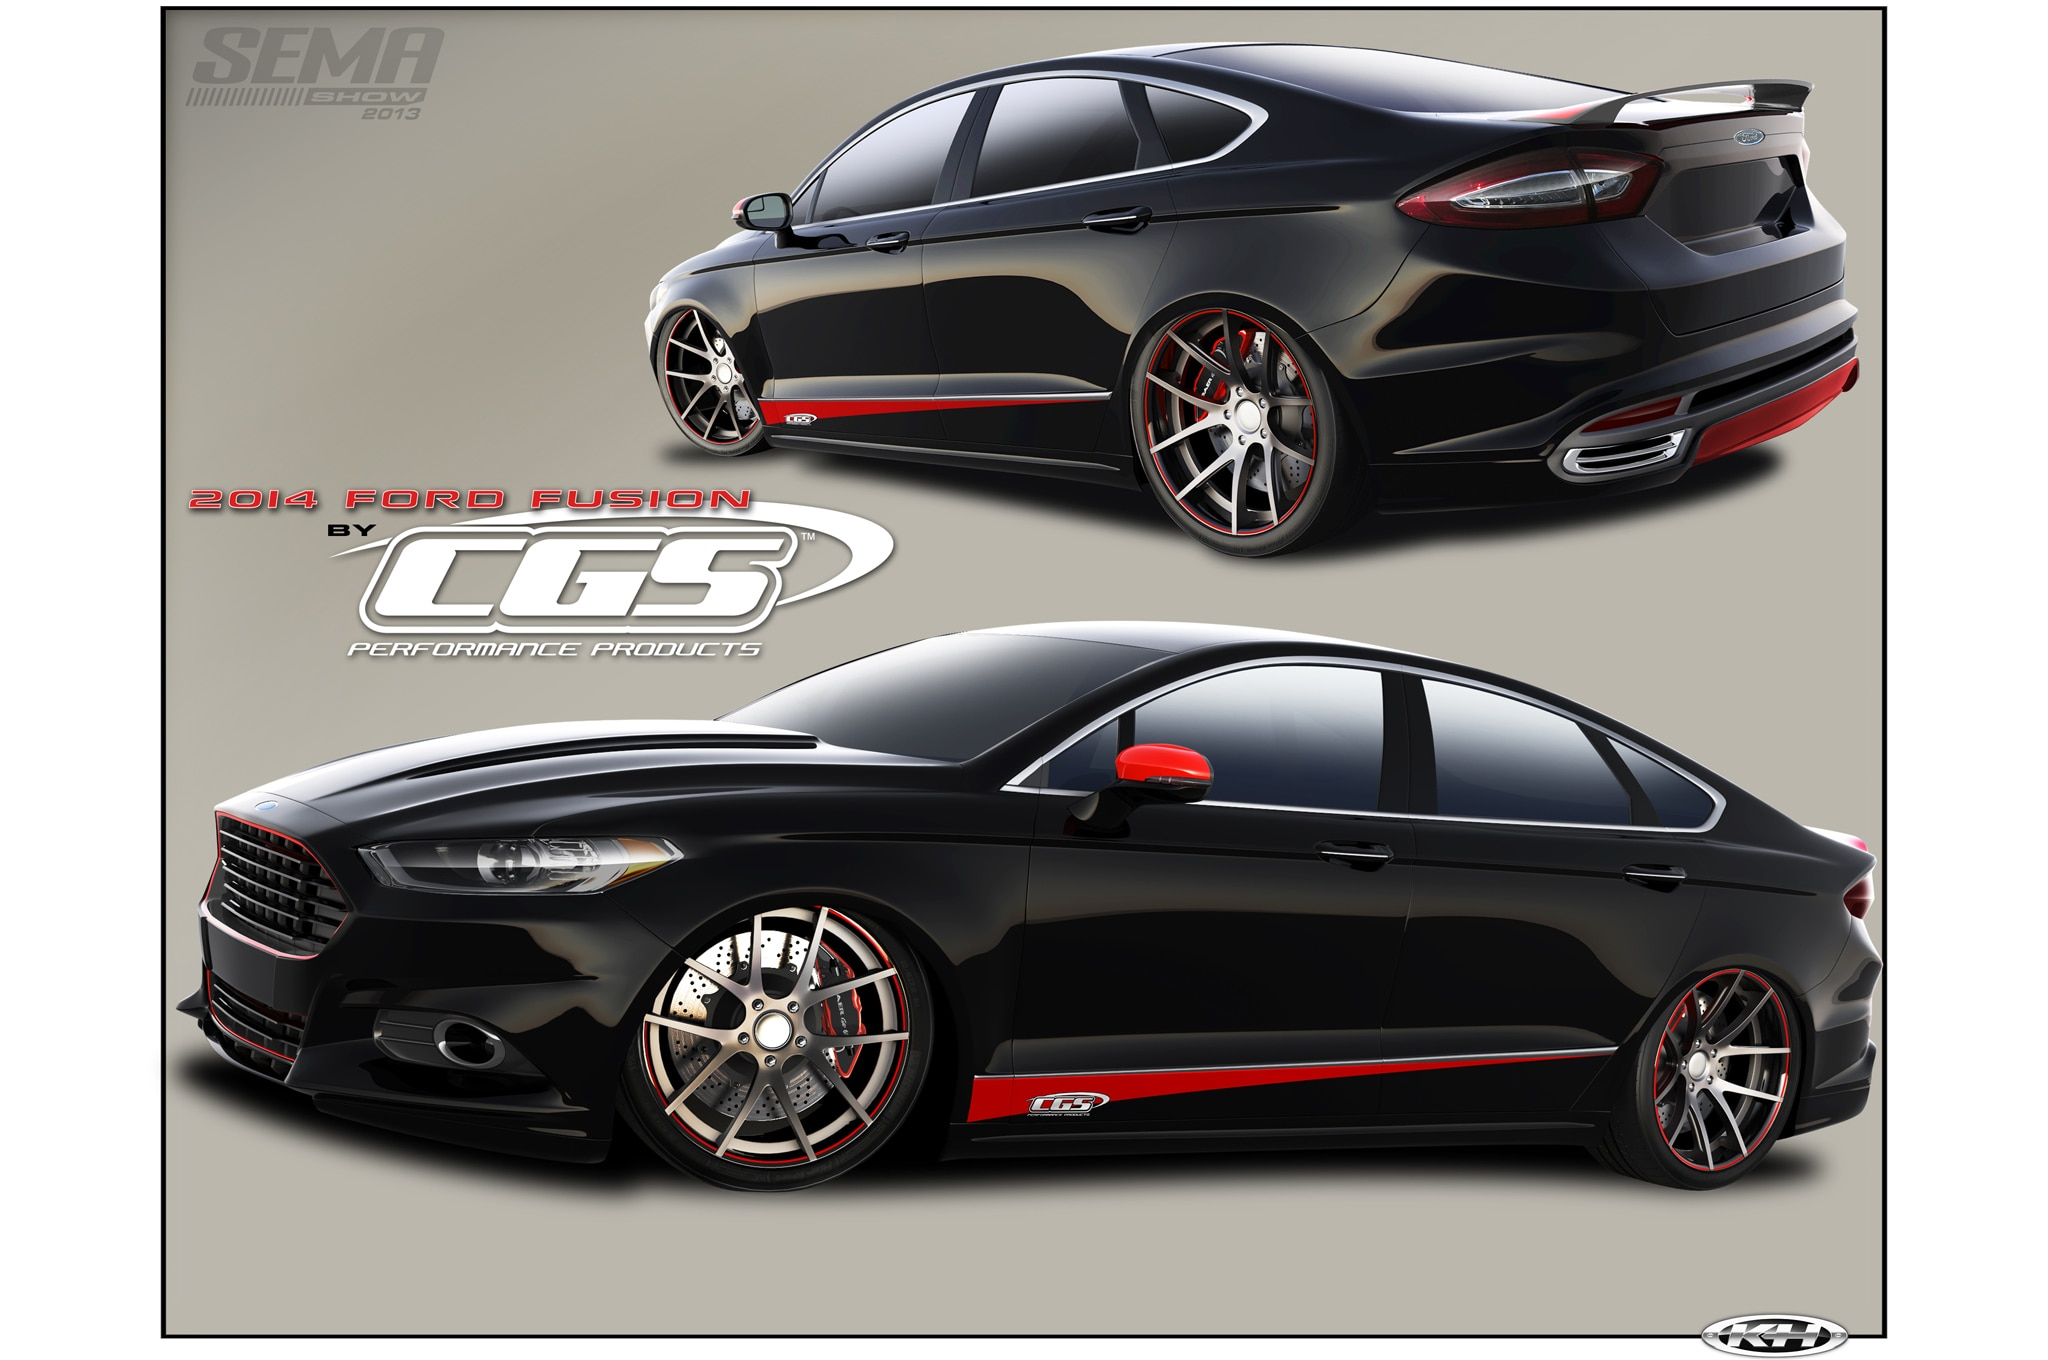 Custom 2015 Ford Fusion >> 2014 Ford Fusion Given 400 HP For SEMA